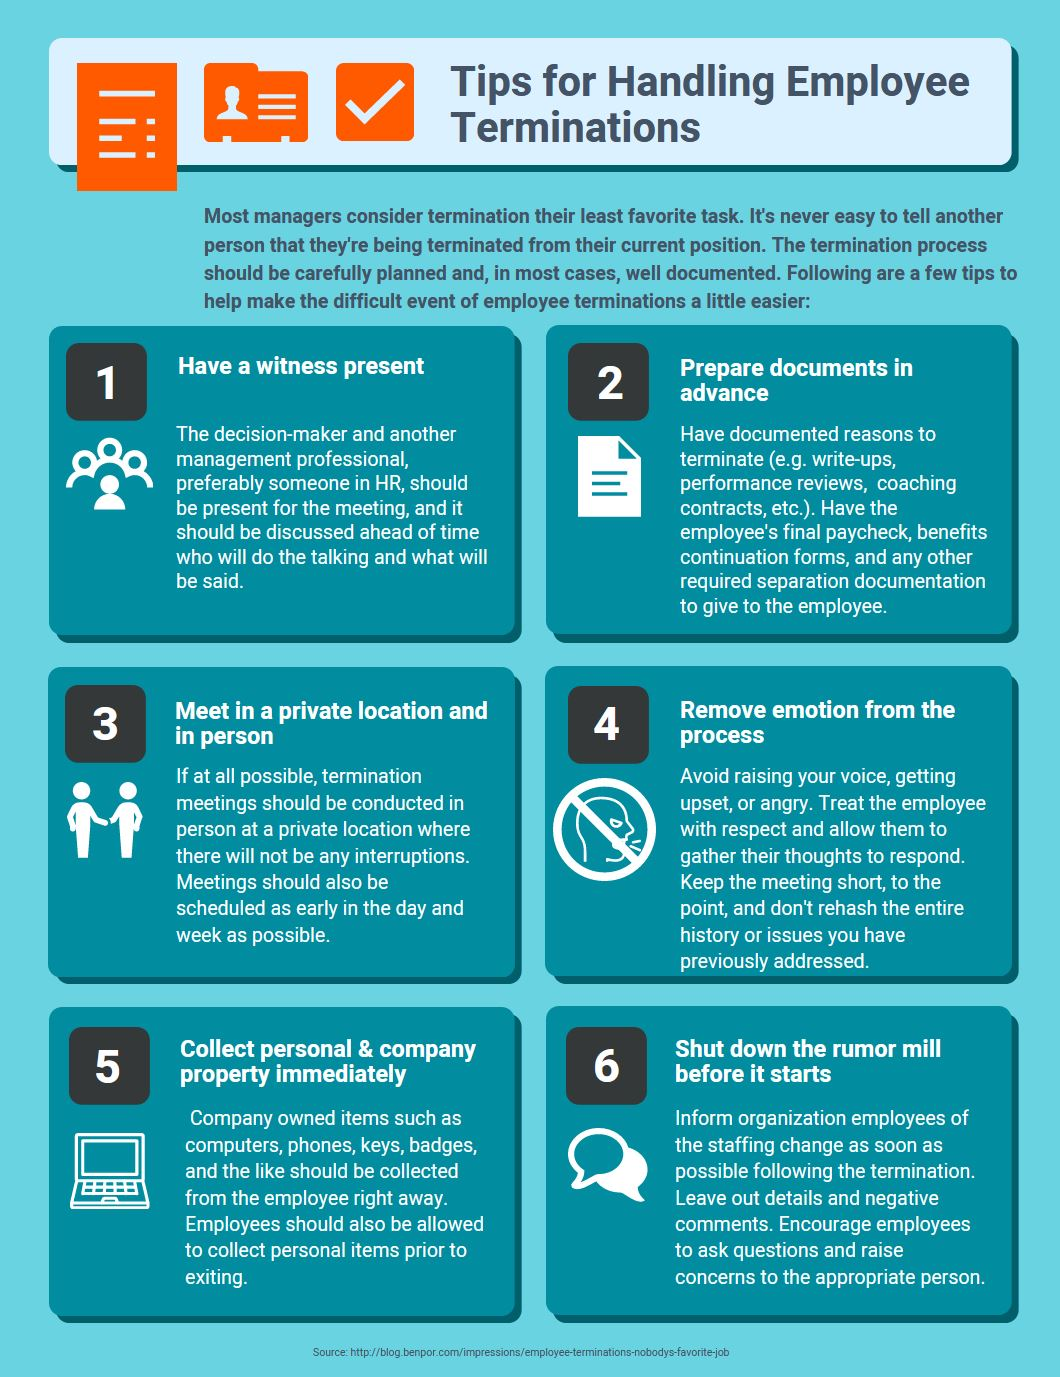 tips for handling employee terminations infographic